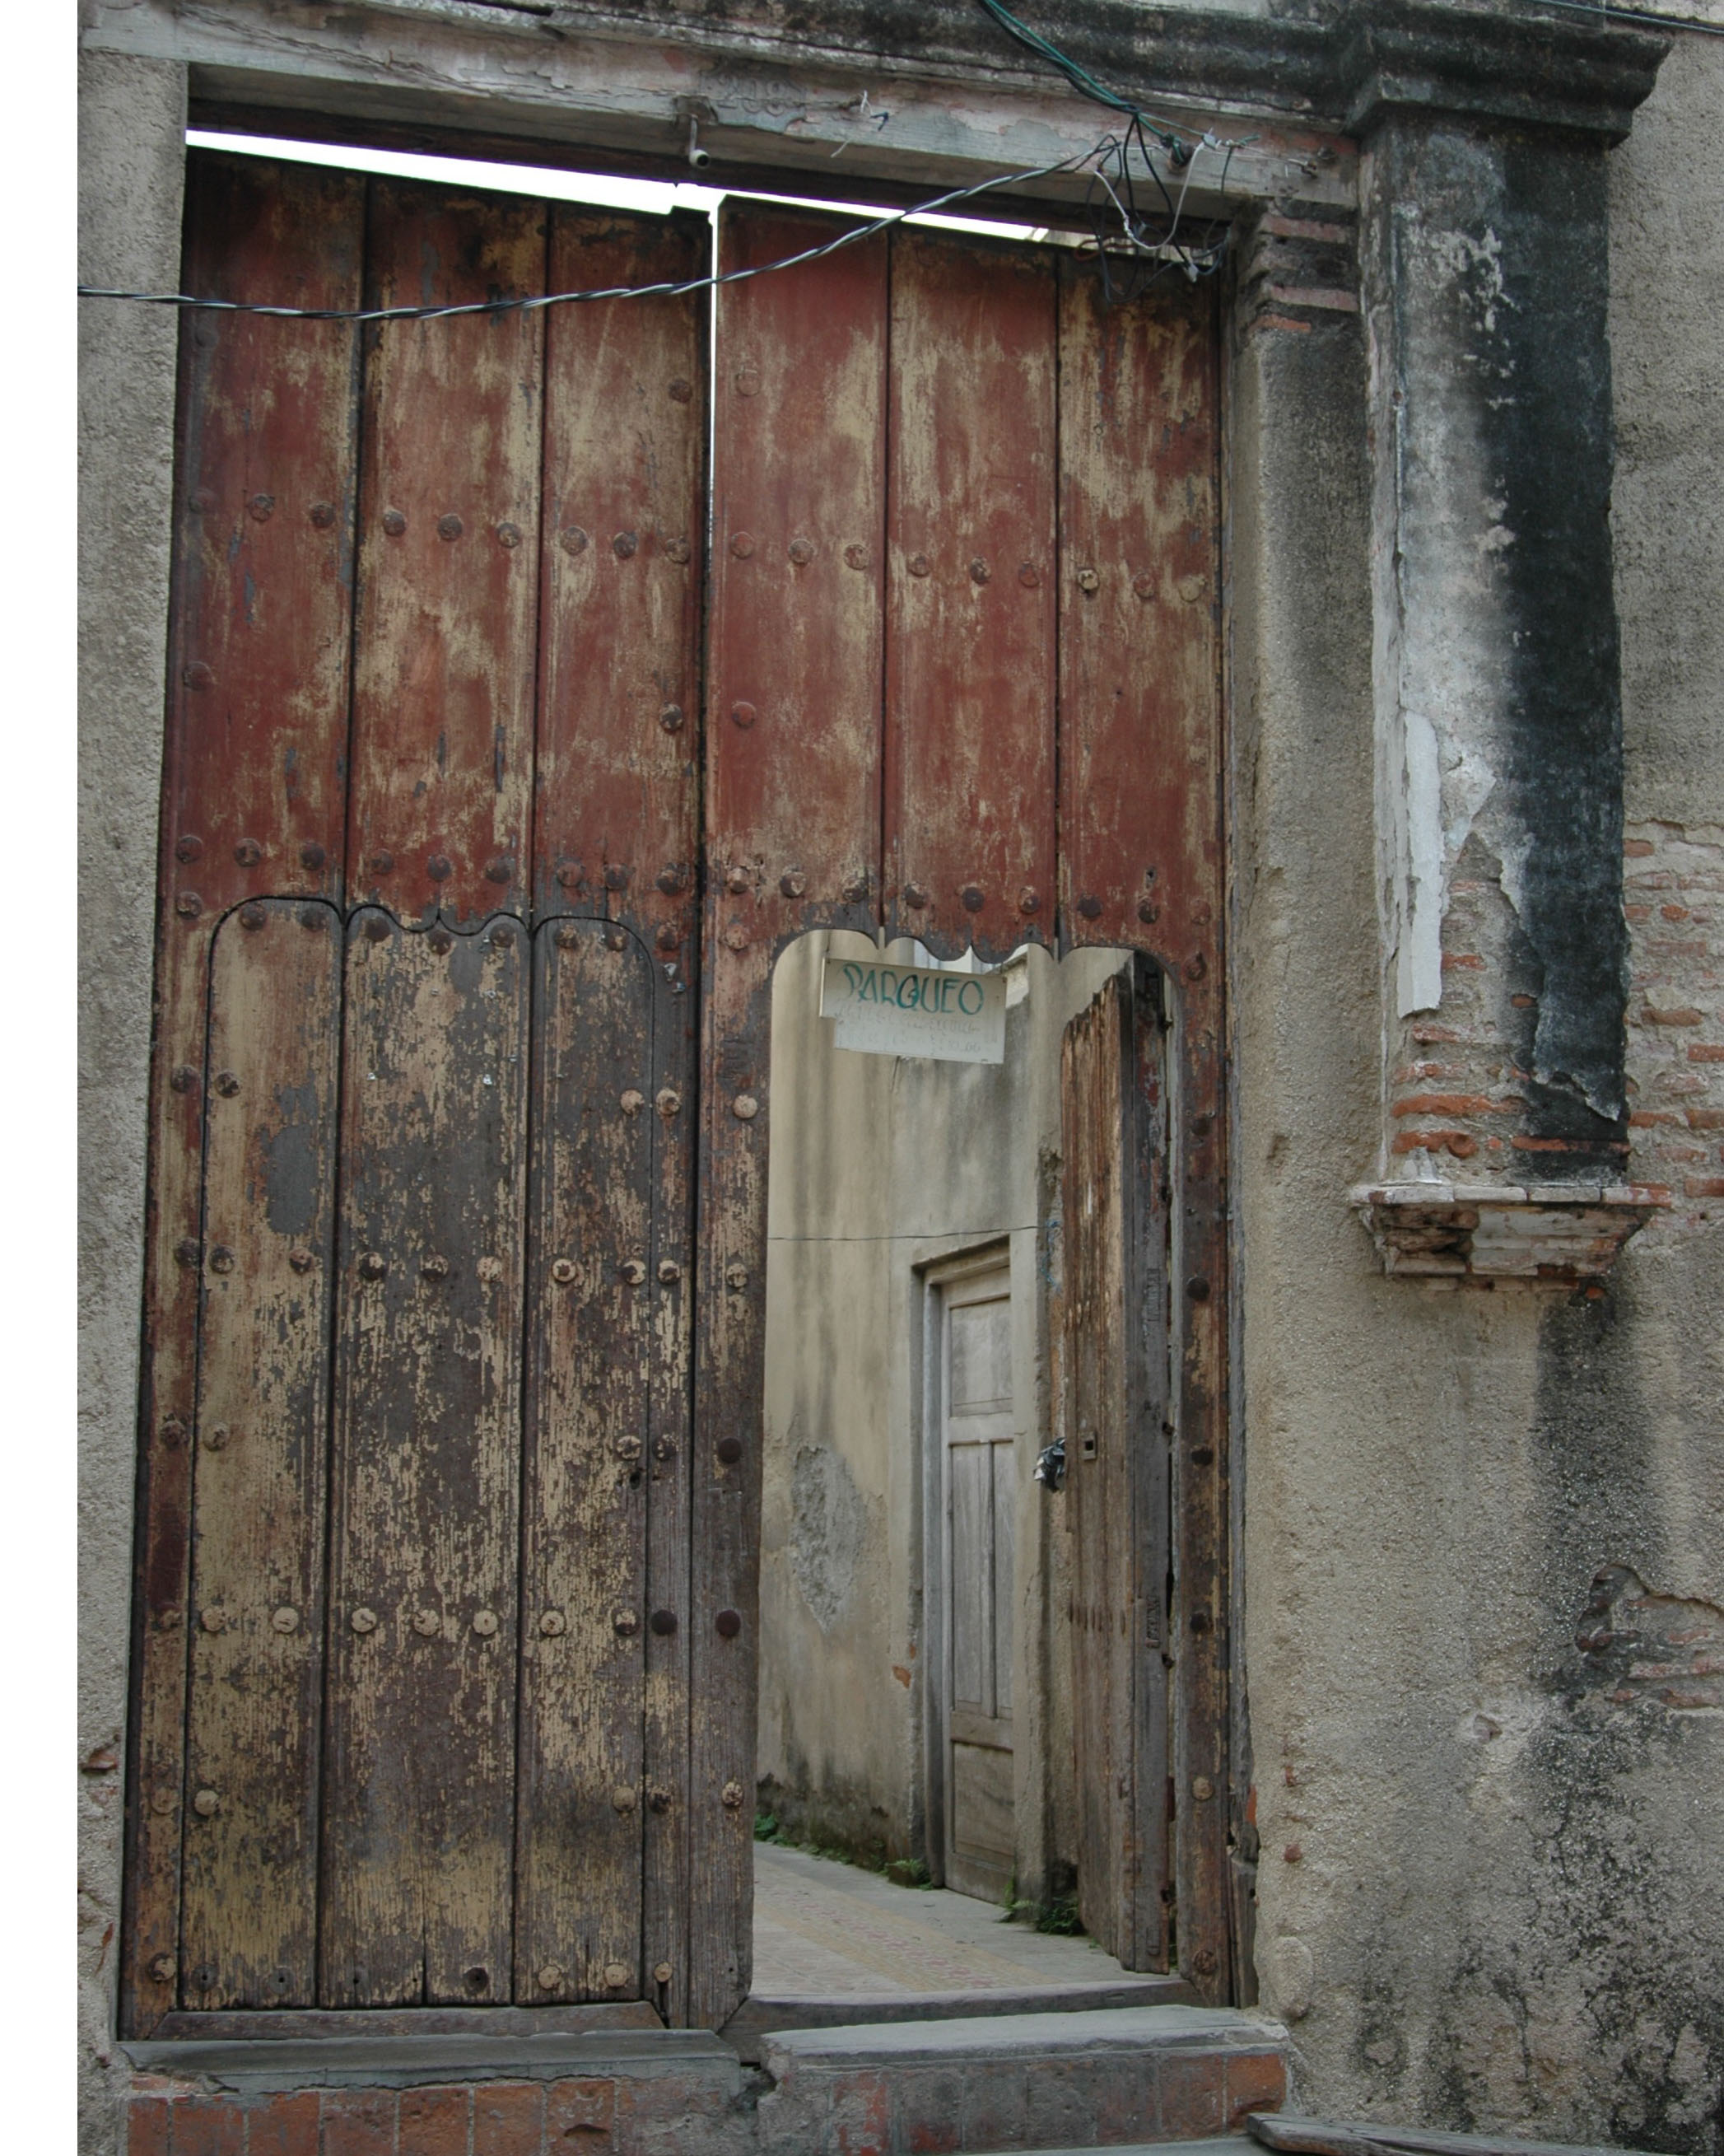 Oversized doors found all over the city of Camagüey